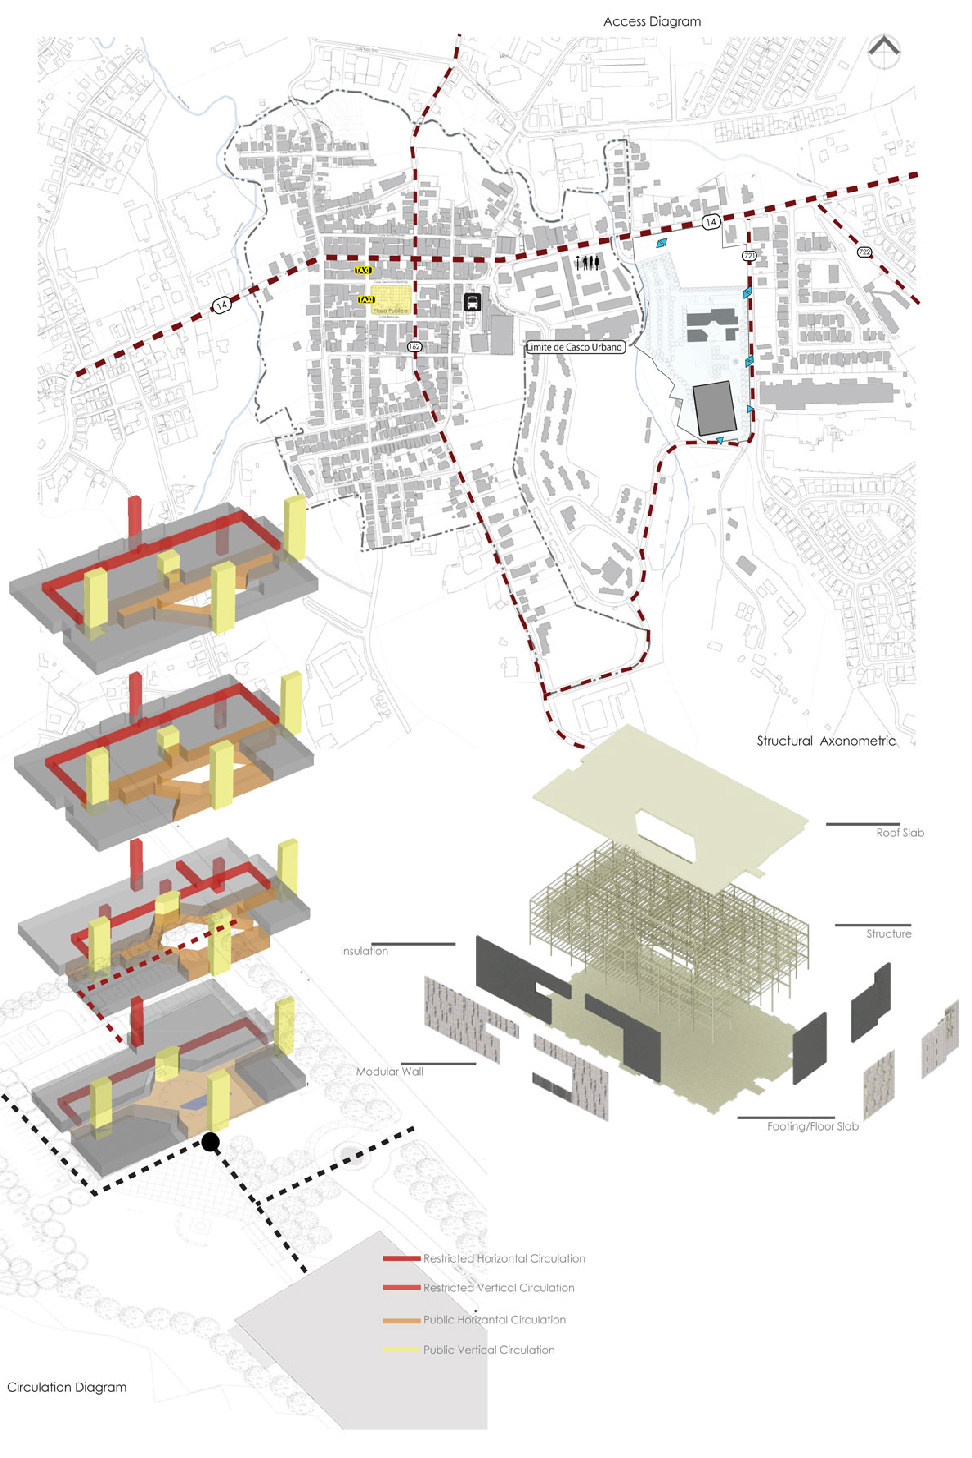 Aibonito Courthouse access diagram, structural axonometric, and circulation